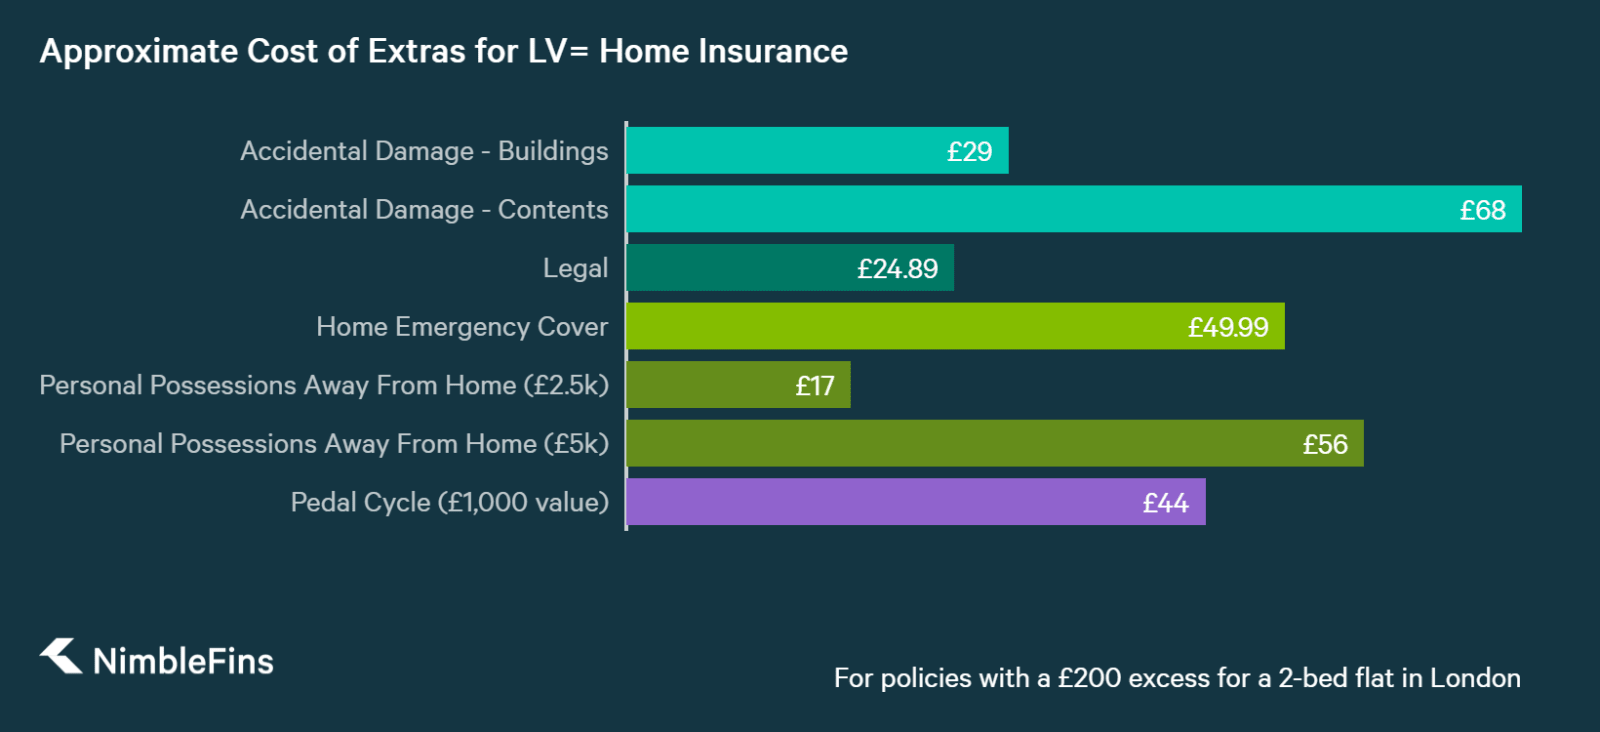 chart showing approximate cost of home insurance add ons for LV= home insurance